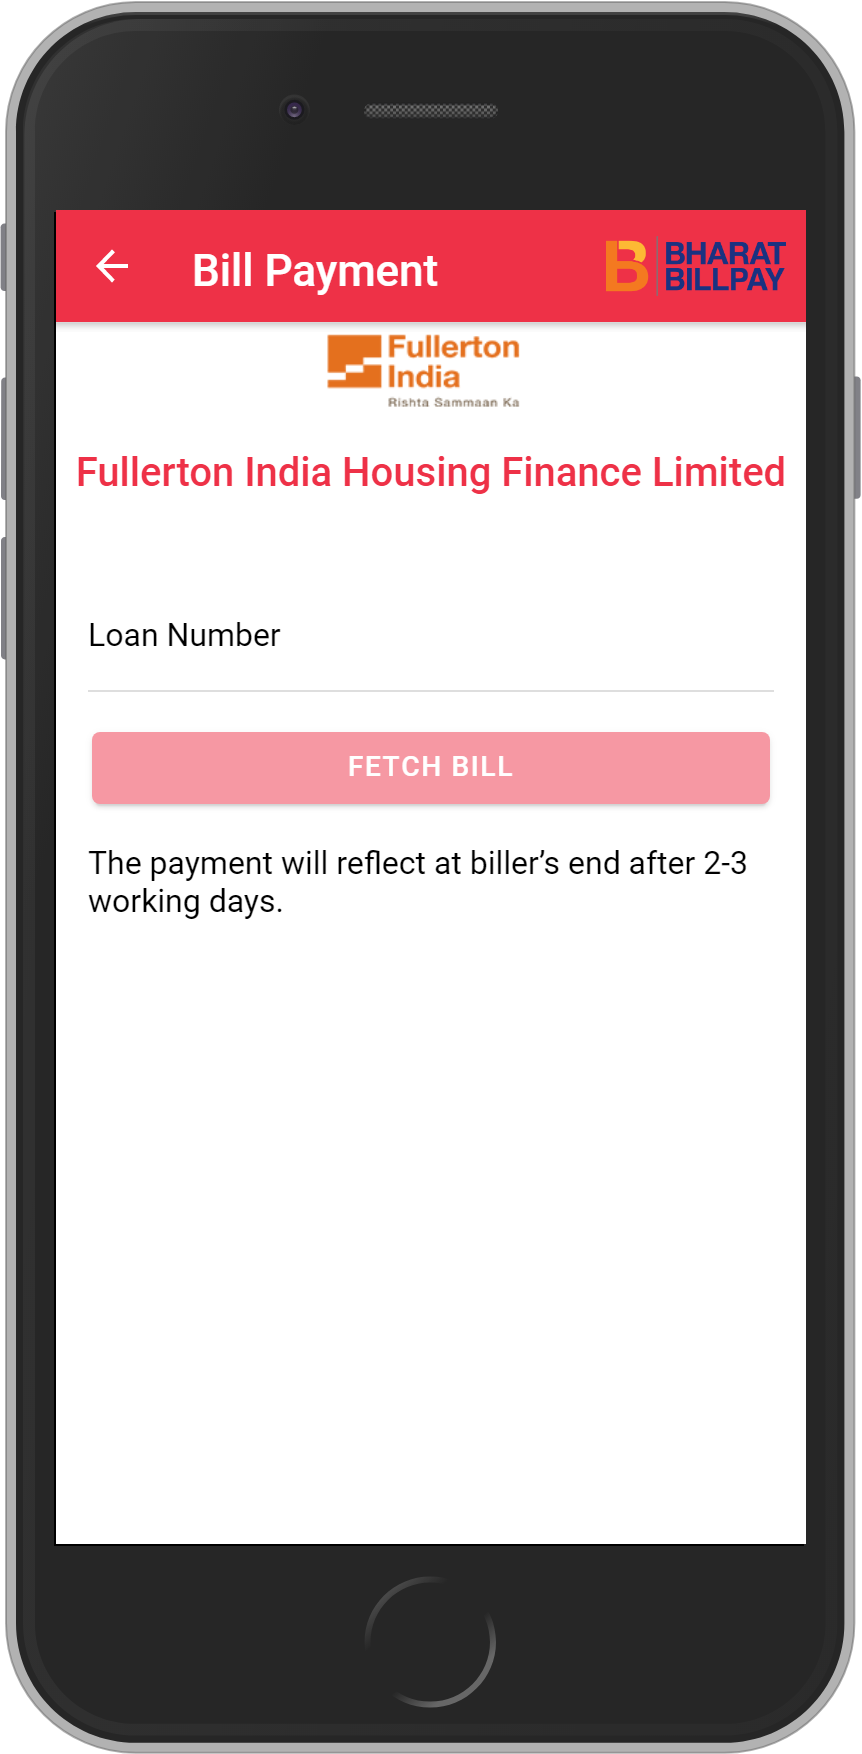 Get UNLIMITED <b>0.1%</b> CASHBACK on Fullerton India Housing Finance Limited Loan Payment.